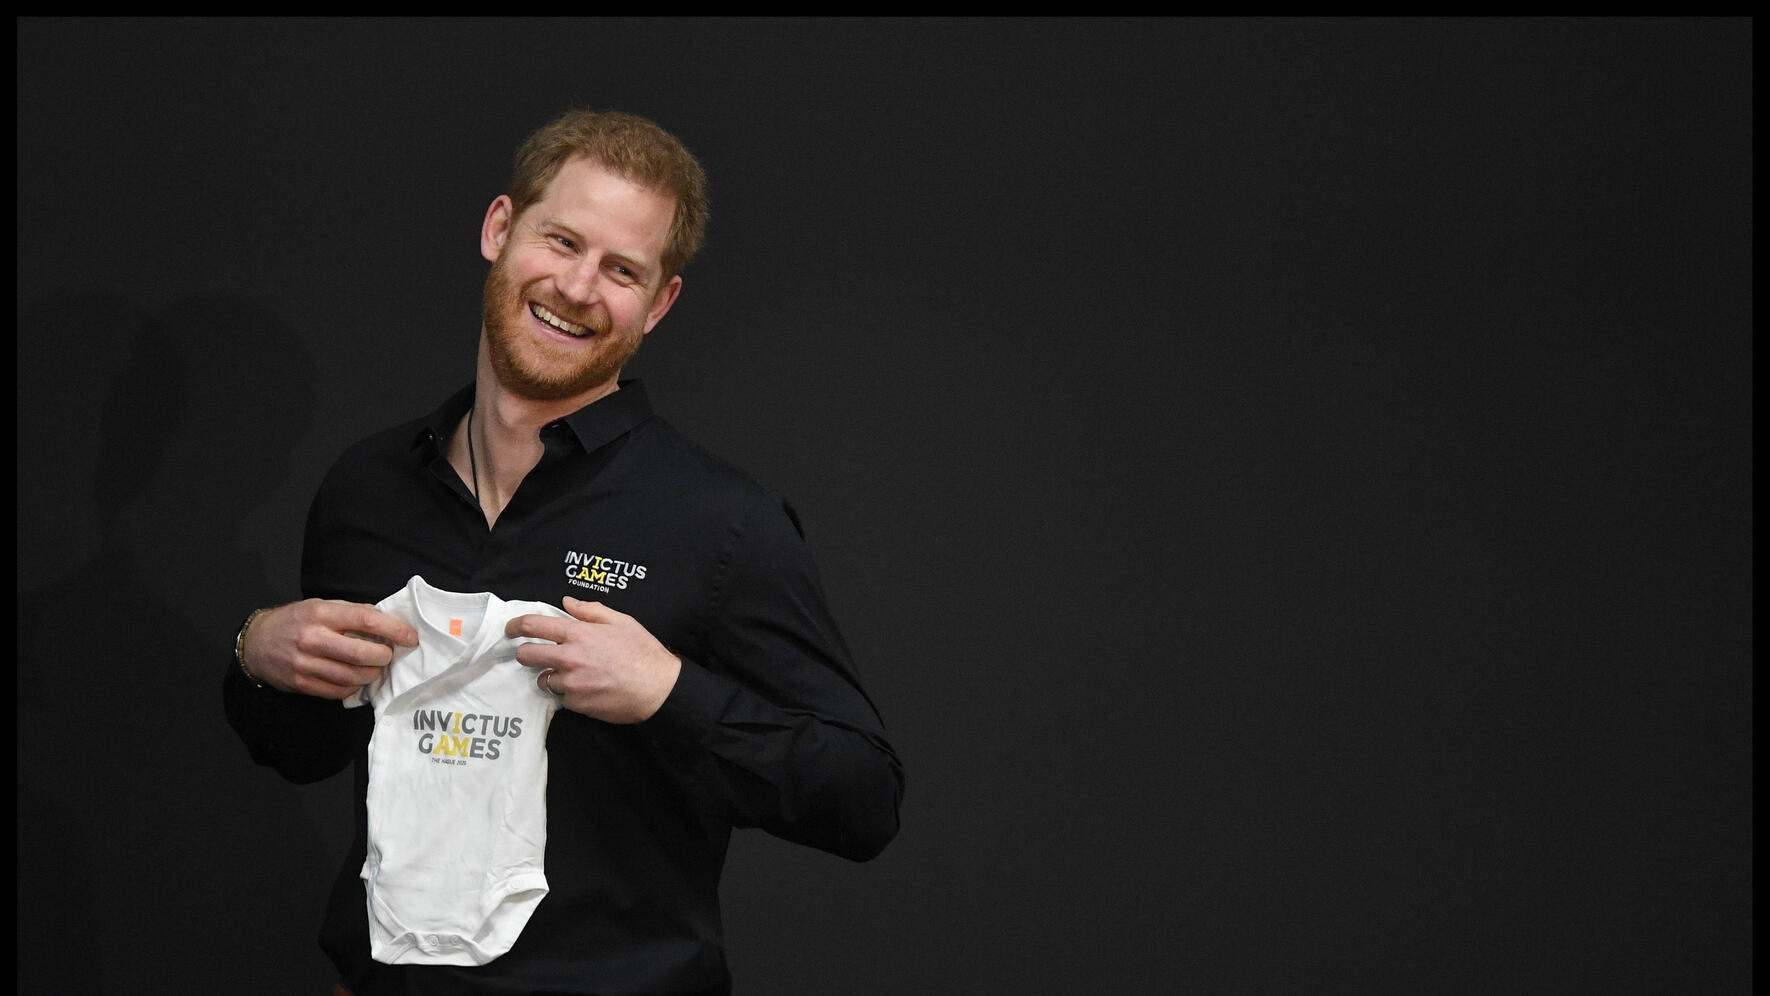 09/05/2019. Hague, Netherlands. Prince Harry launching The fifth Invictus Games. Prince Harry, The Duke of Sussex, is presented with a babygrow during a visit The Hague to launch the fifth Invictus Games which will take place in May 2020. (Andrew Parsons / i-Images / Polaris) (FOTO:DUKAS/POLARIS)